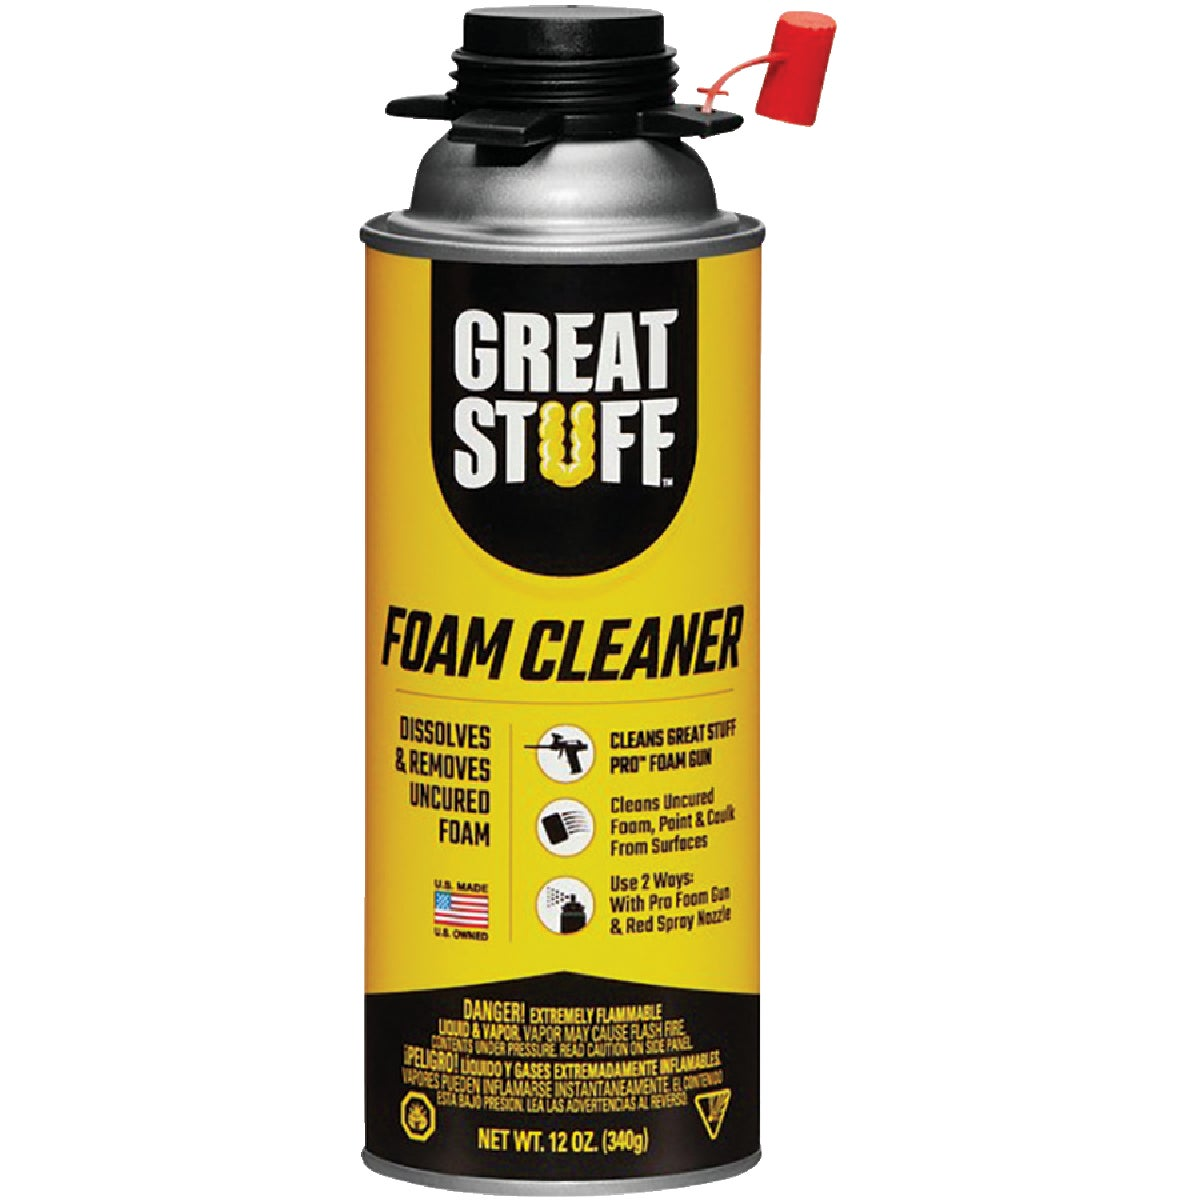 12OZ GRTSTF TOOL CLEANER - 259205 by Dow Chemical Company